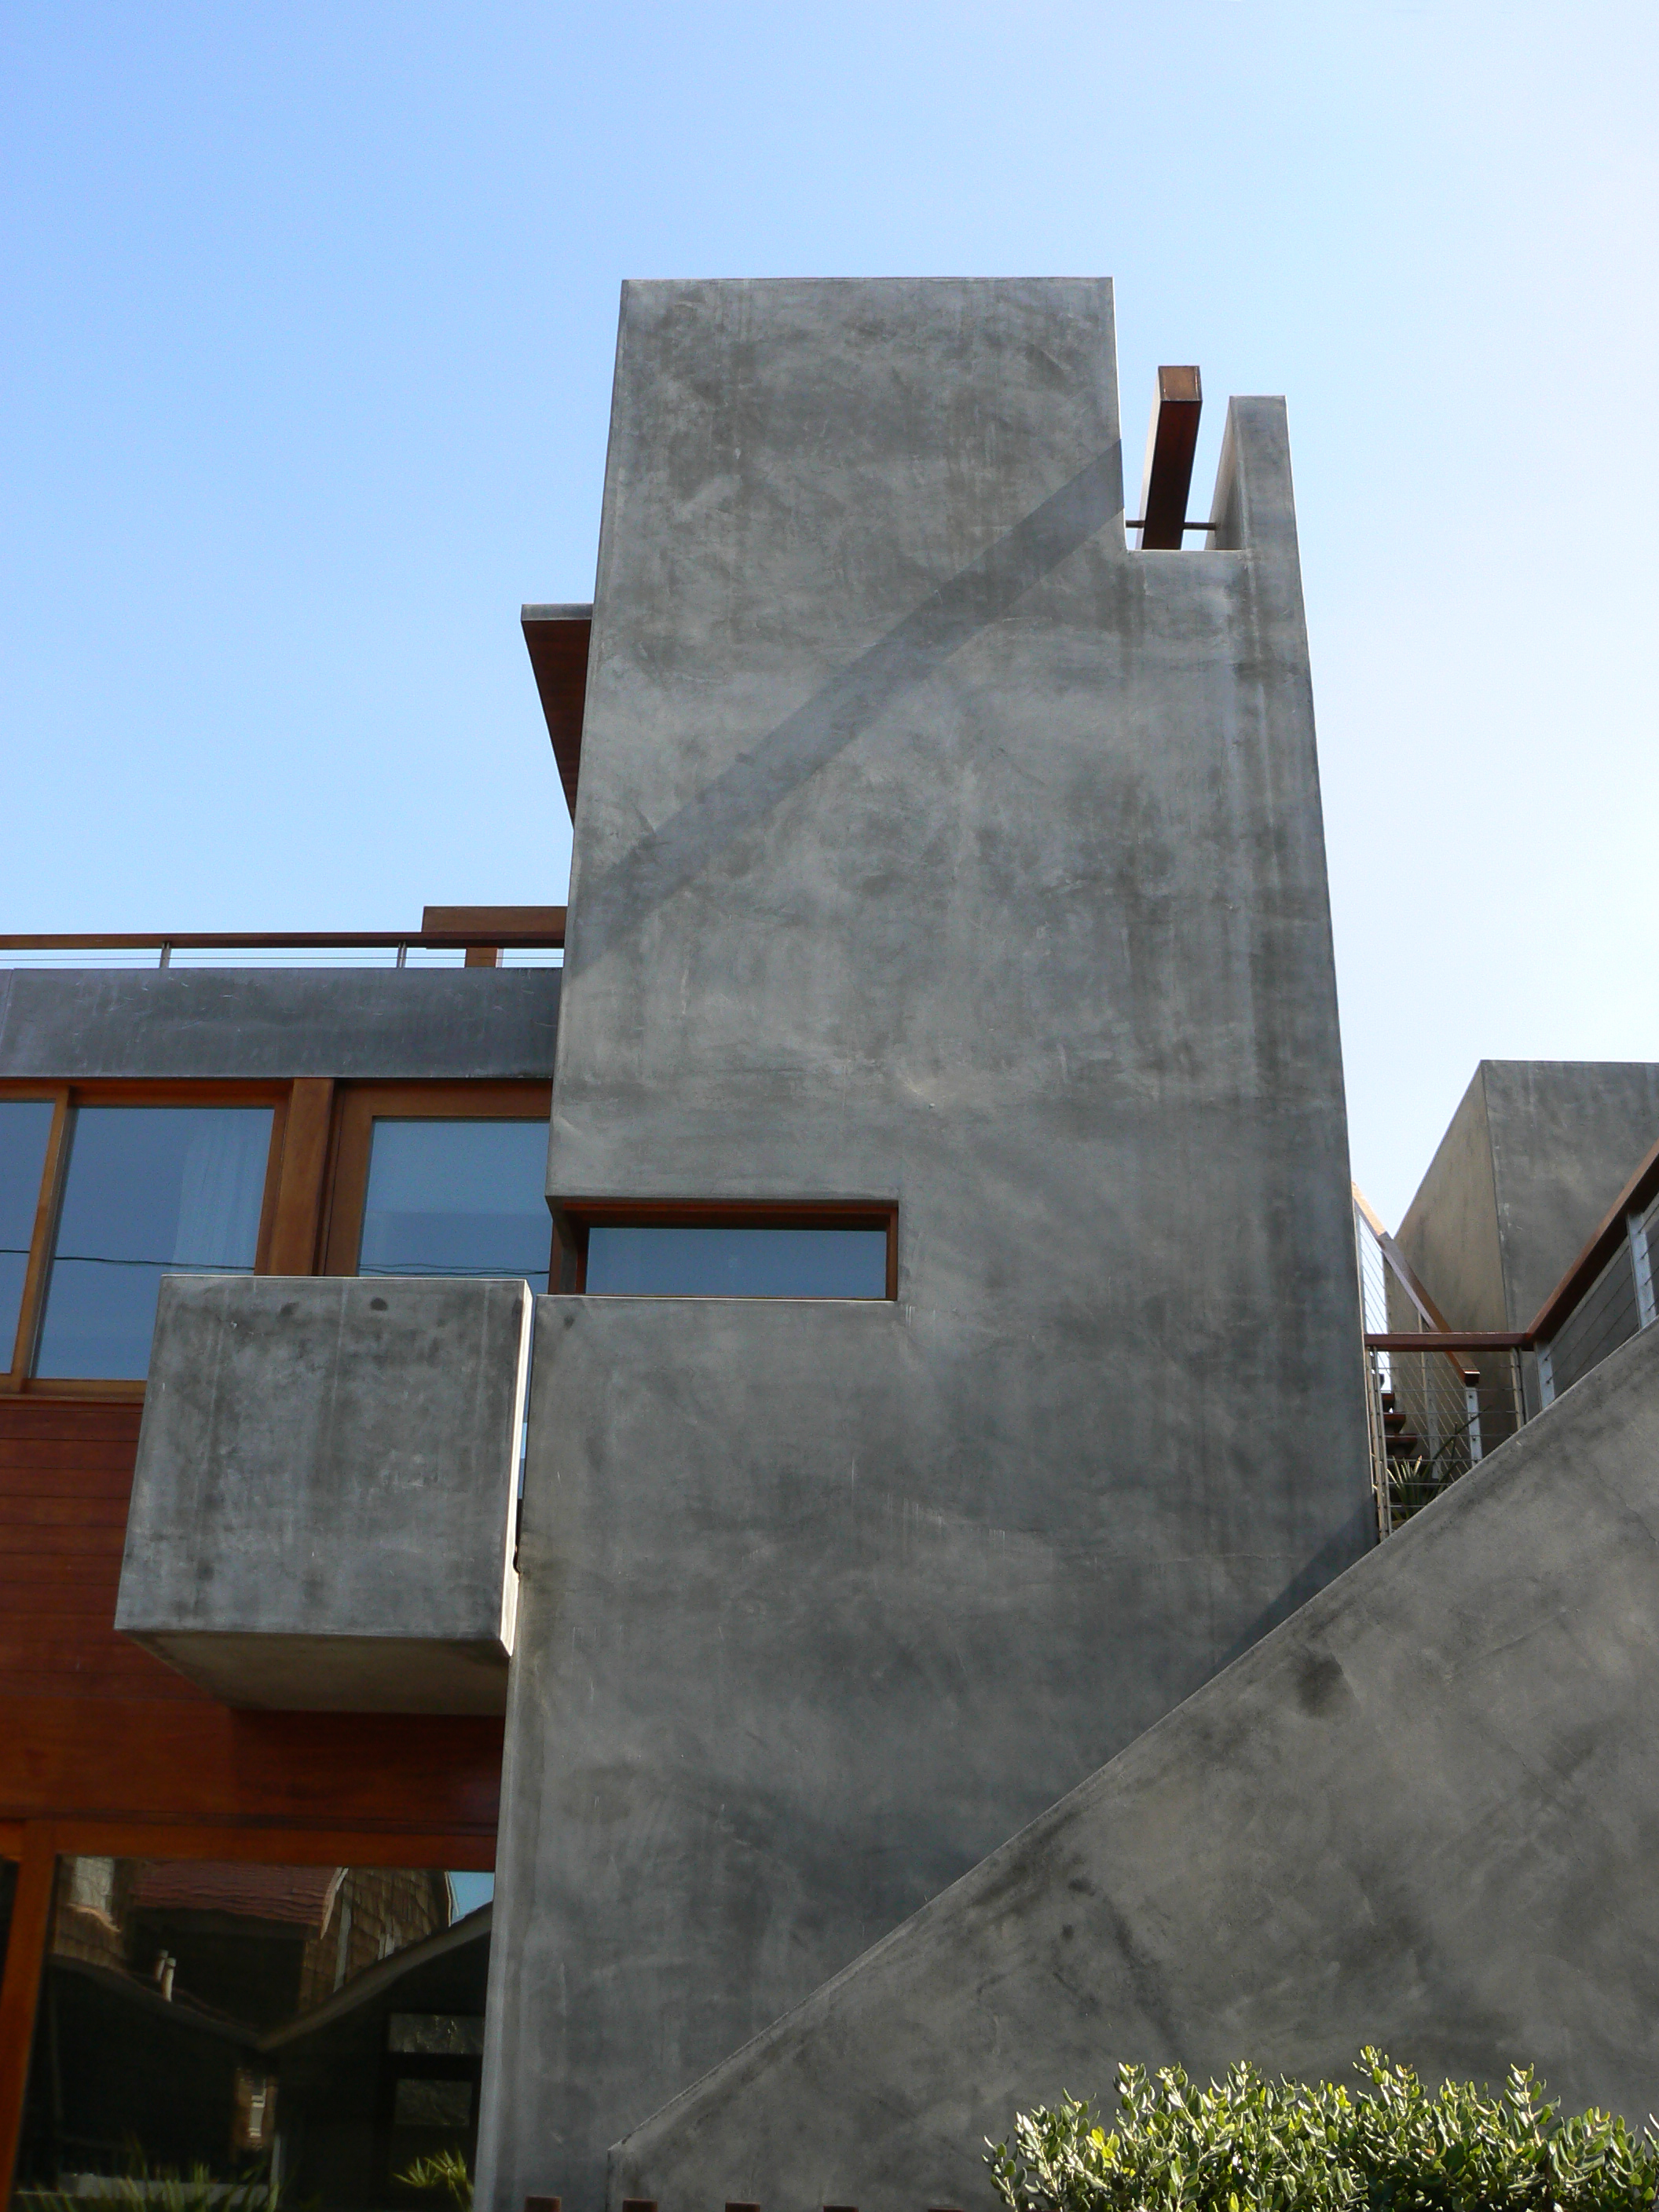 S.E.A.-Studio-Environmental-Architecture-David-Hertz-FAIA-Strand-House-Hermosa-Beach-sustainable-regenerative-restorative-design-residential-contemporary-modern-passive-systems-recycled-wood-concrete-green-building-South-Bay-ocean-view-studioea-18.jpg